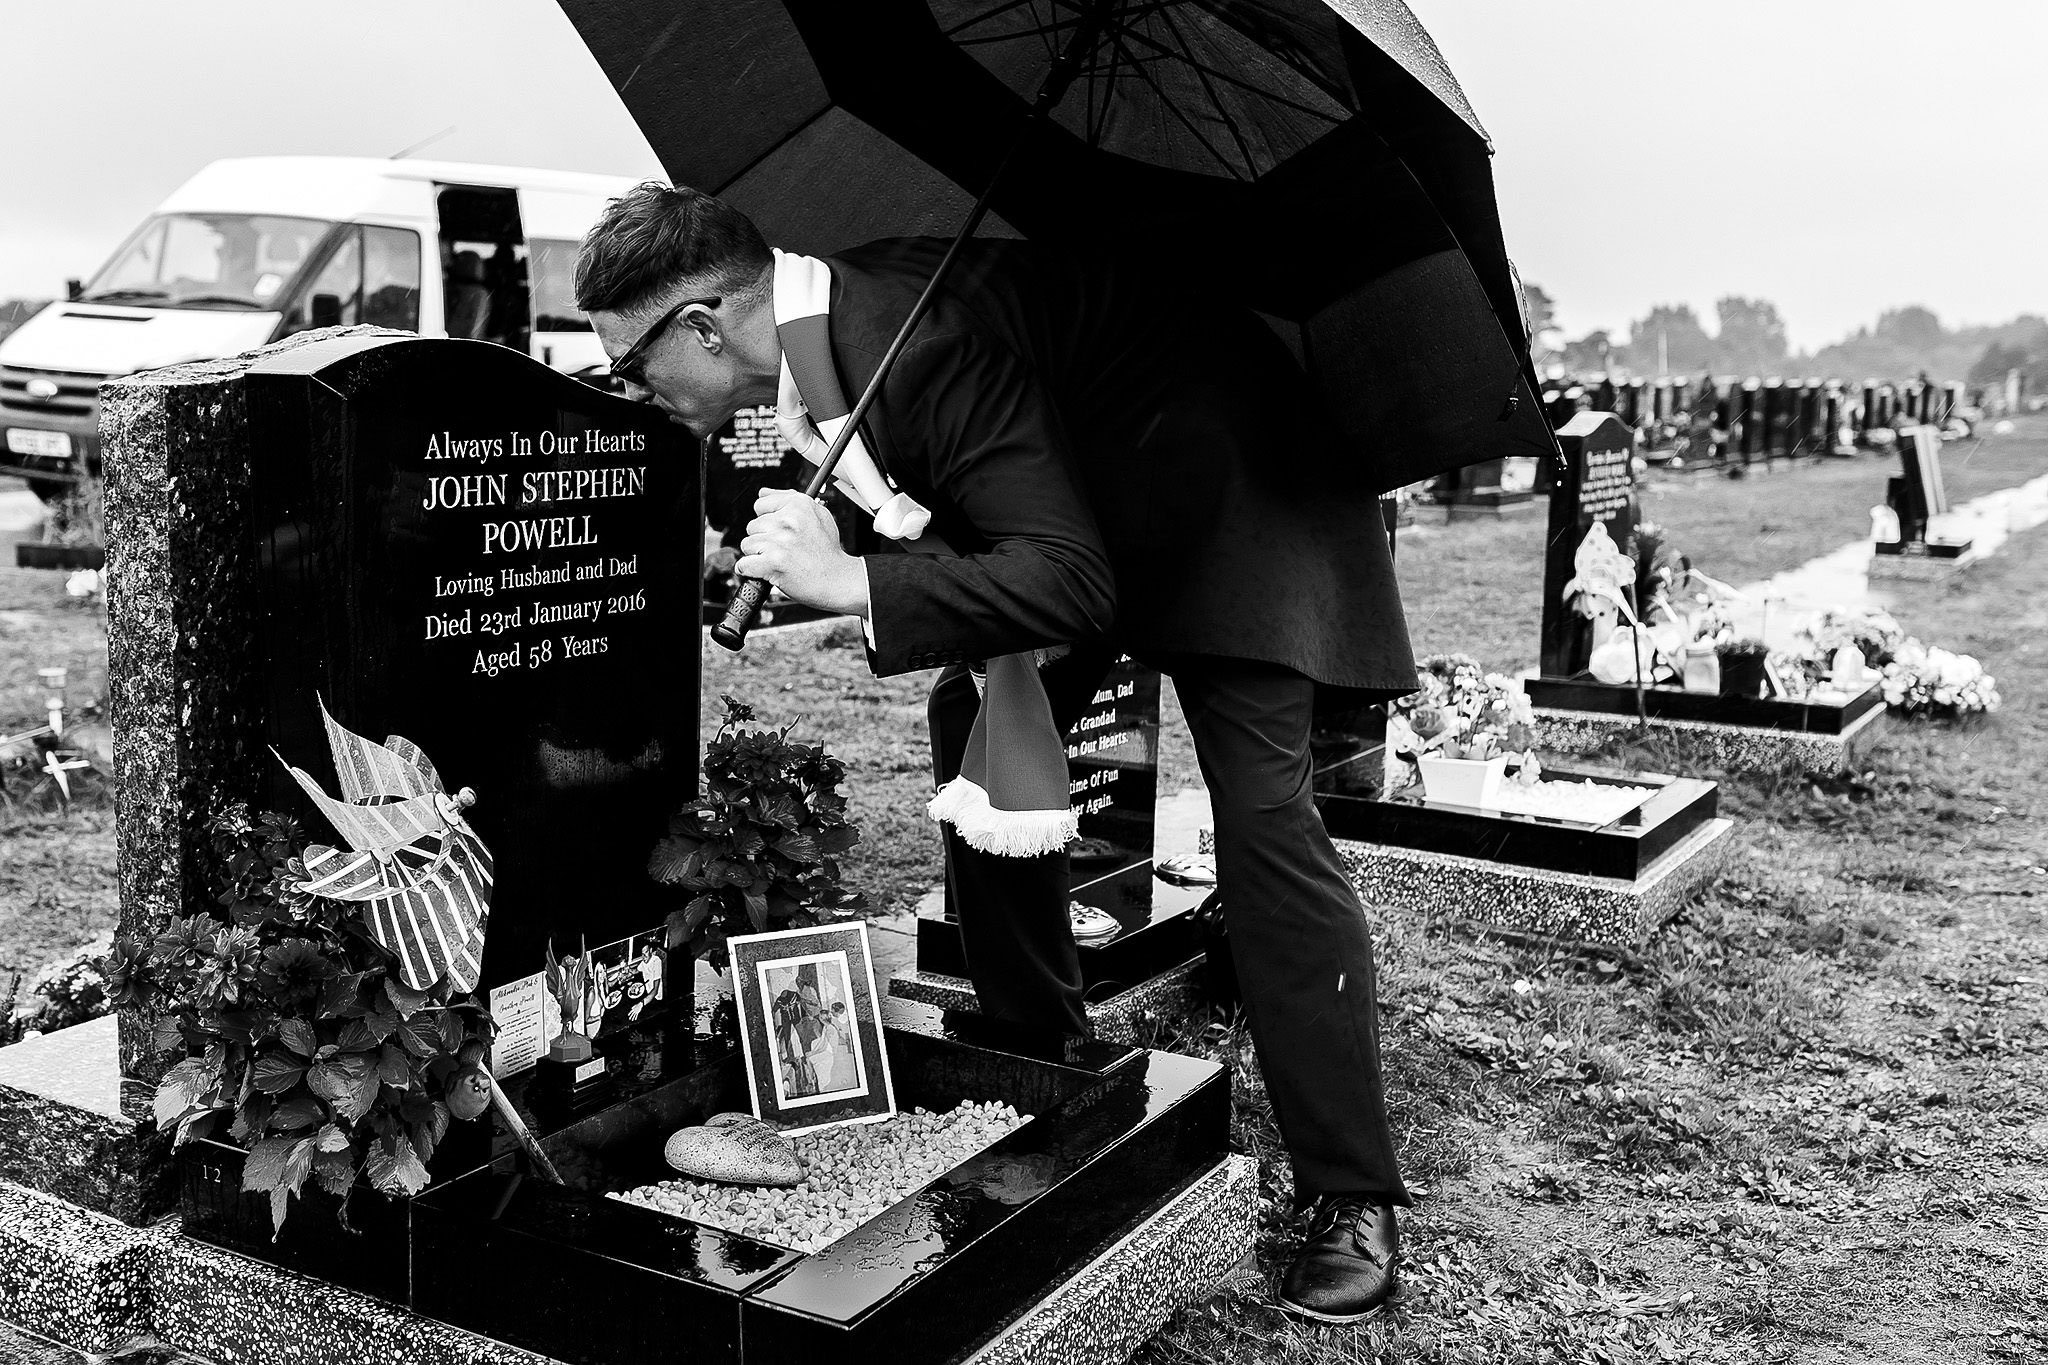 Groom holding umbrella leaning over to kiss head of grave stone